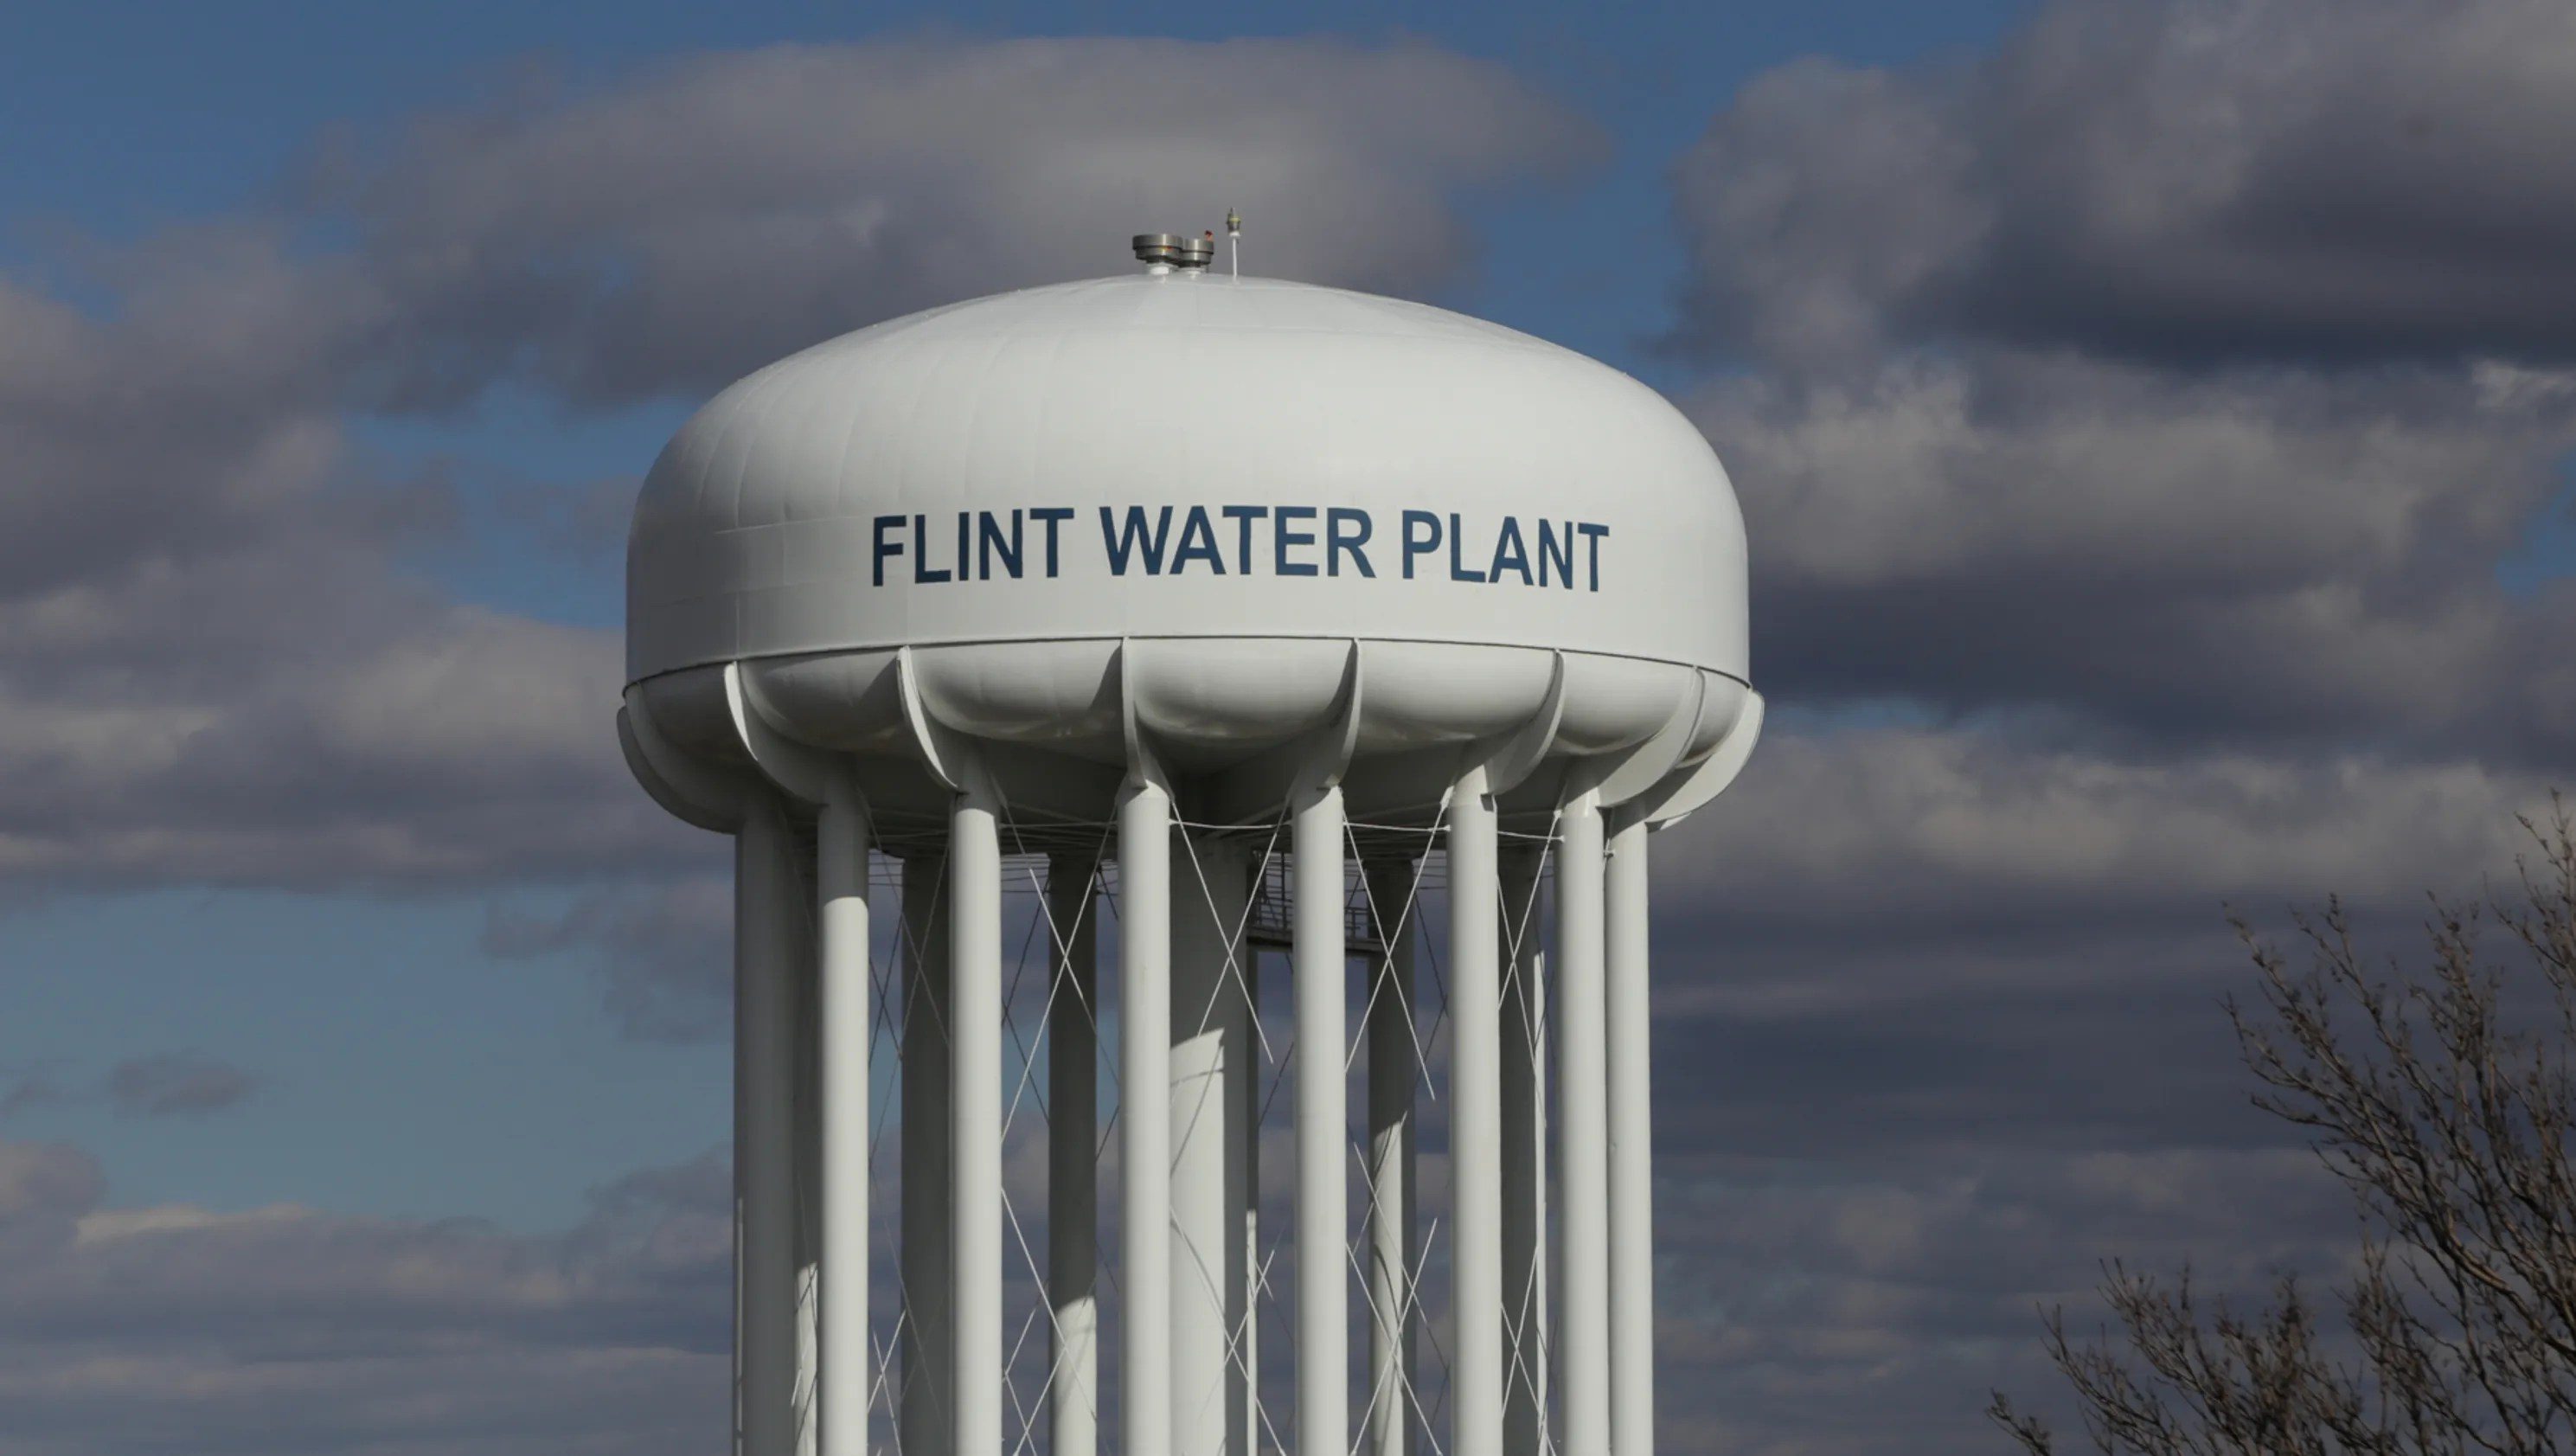 Flint criminal investigator Water crisis was caused by